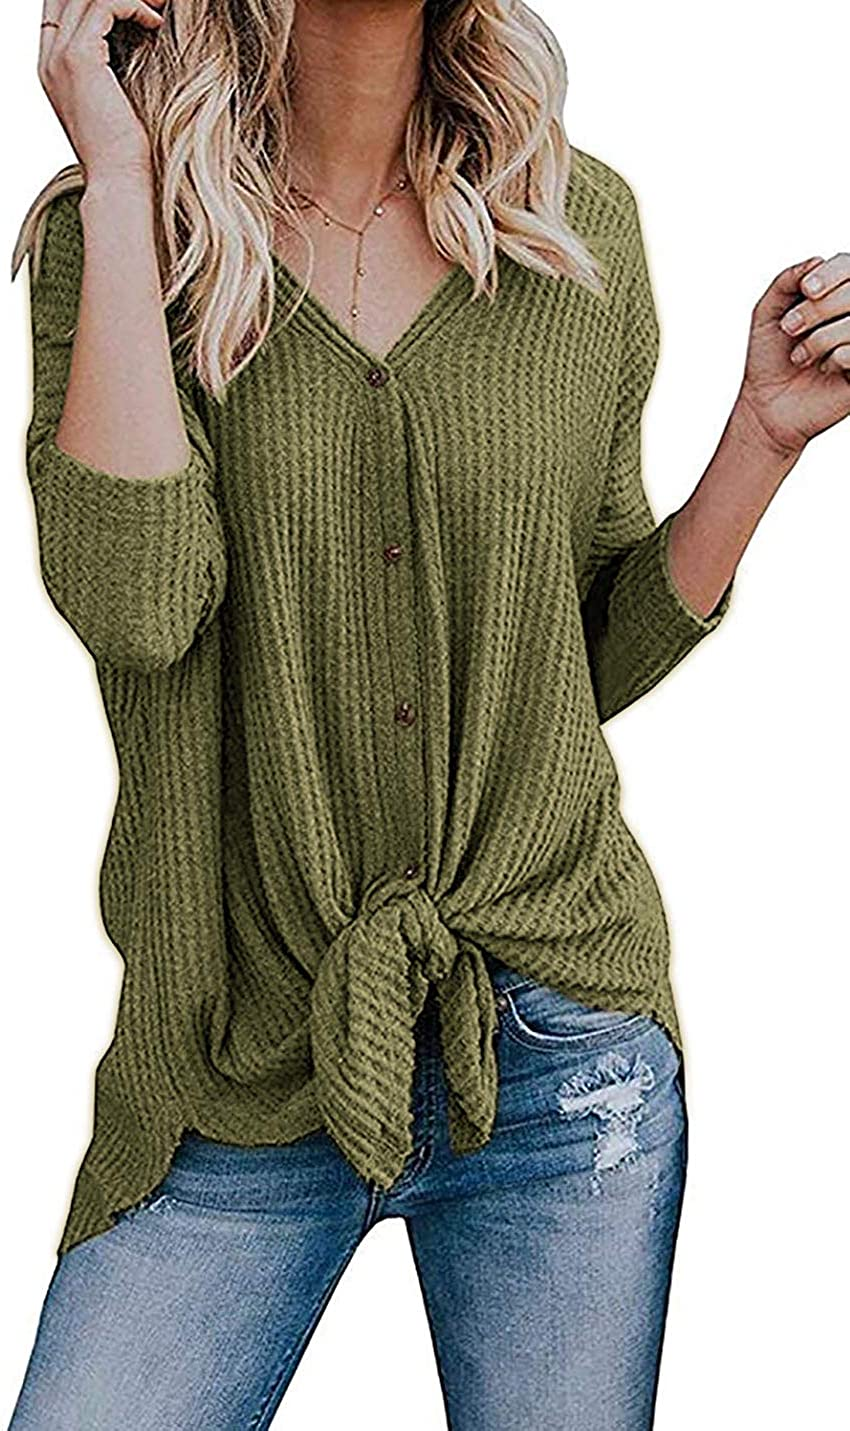 Cowear Women's S-3X Tie Front Sweater Cardigan Blouses Casual Waffle Knit Thermal Tops